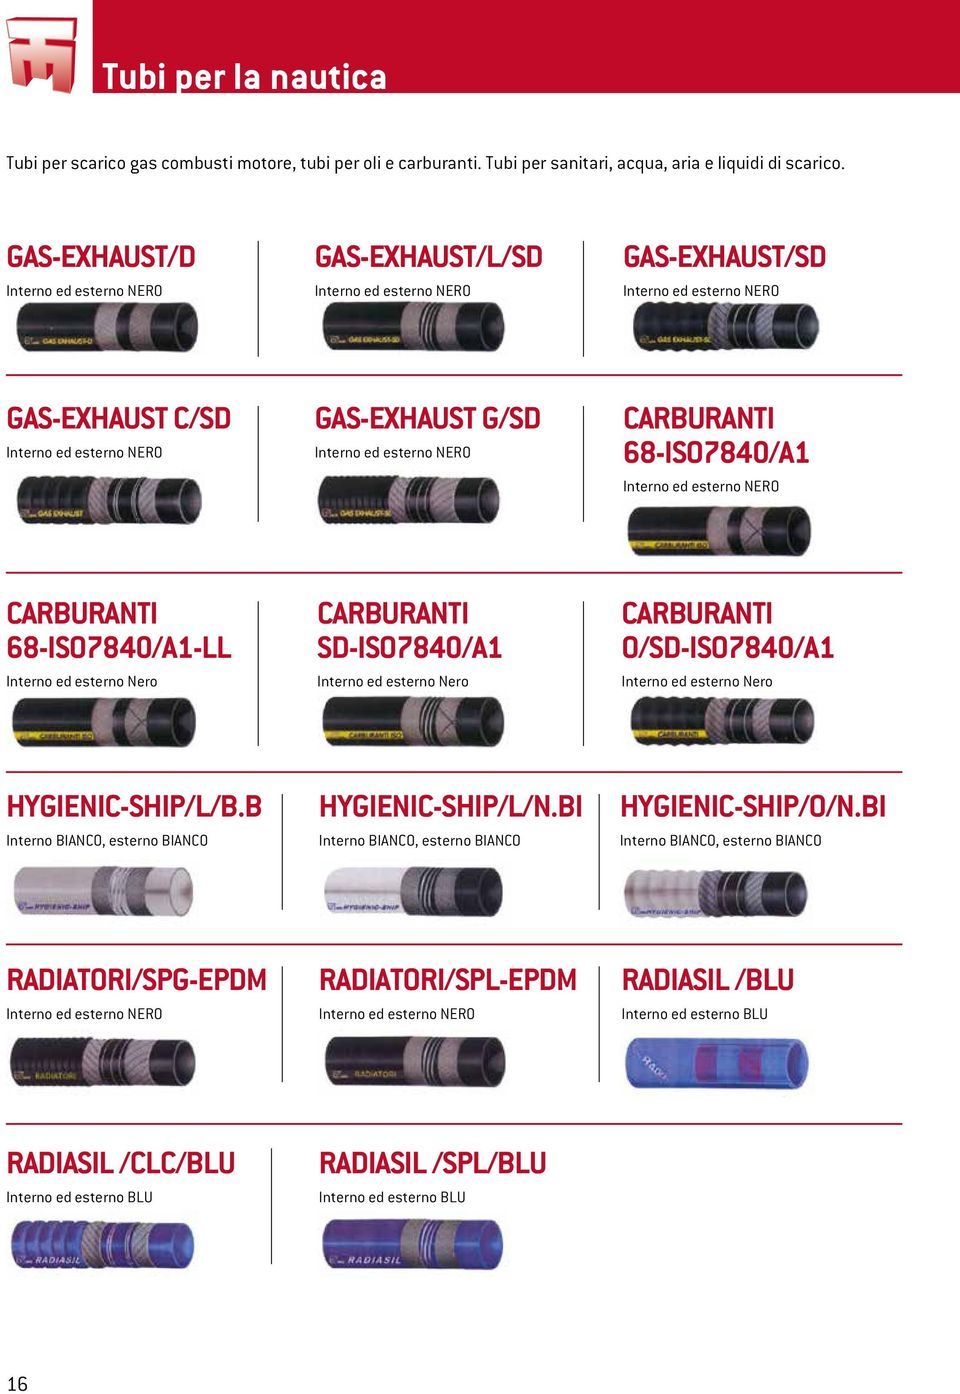 Nero GAS-EXHAUST G/SD Interno ed esterno Nero CARBURANTI 68-ISO7840/A1 Interno ed esterno Nero CARBURANTI 68-ISO7840/A1-LL Interno ed esterno Nero CARBURANTI SD-ISO7840/A1 Interno ed esterno Nero